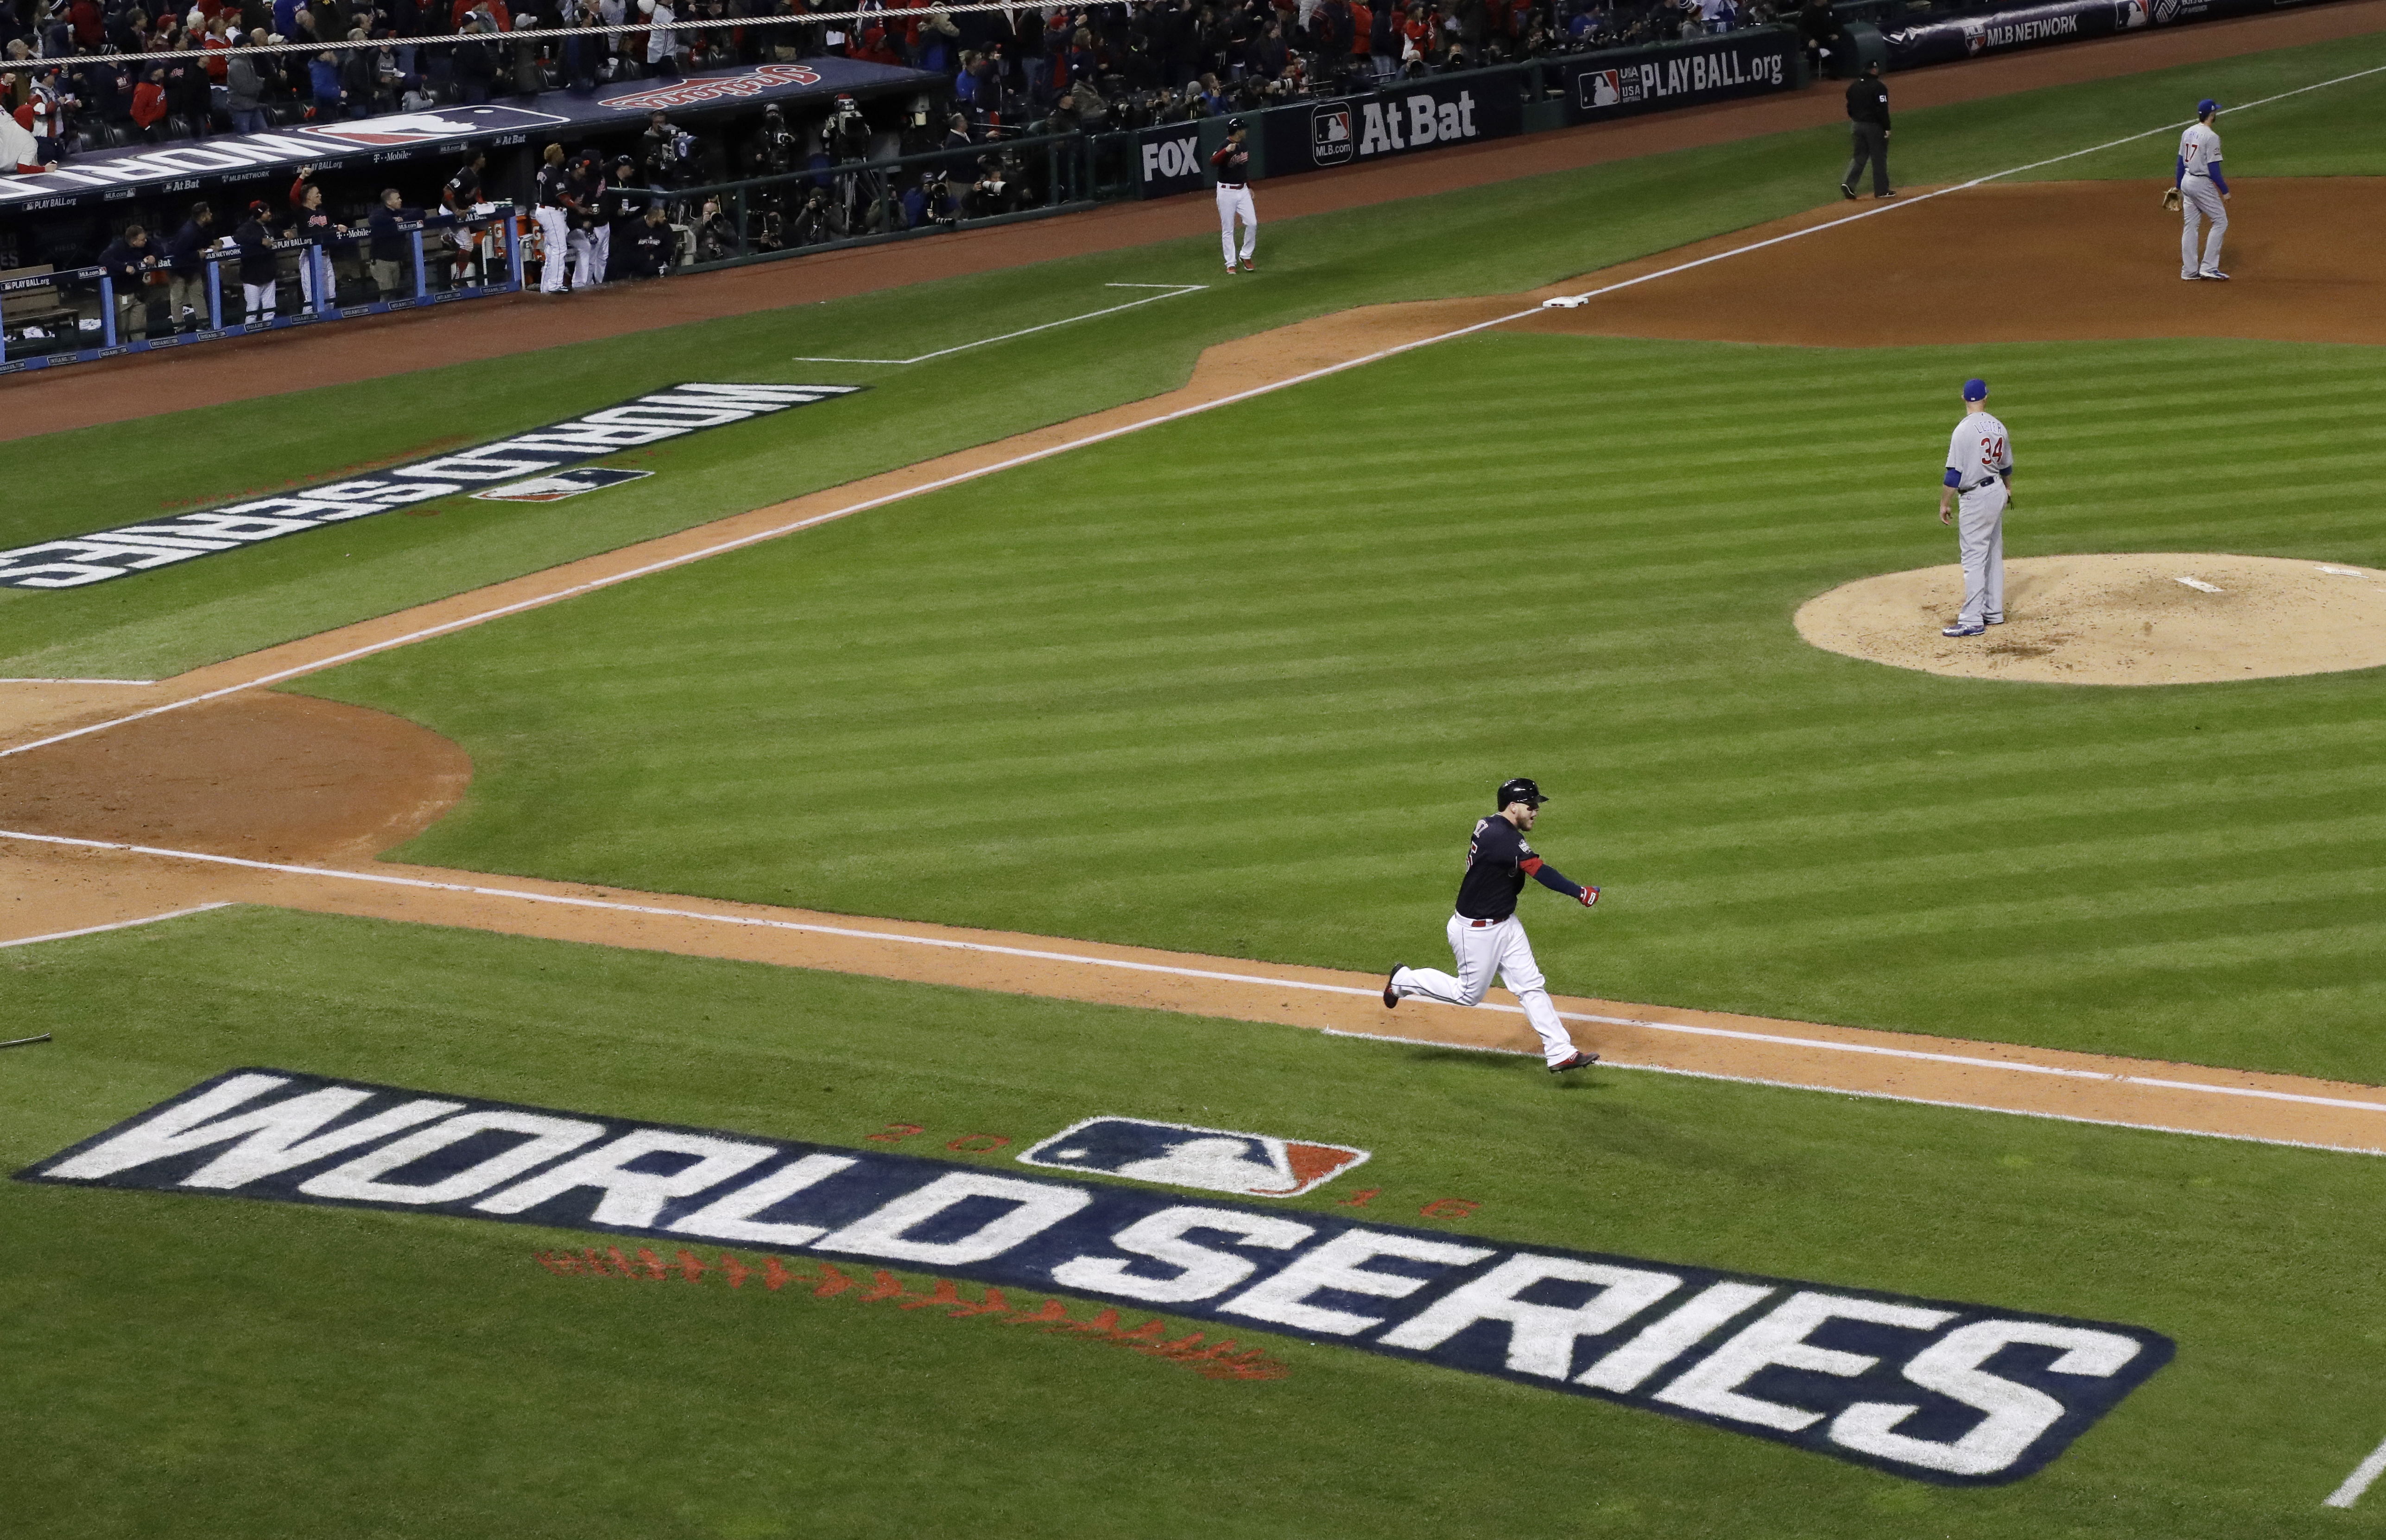 Cleveland Indians' Roberto Perez hits a home run during the fourth inning of Game 1 of the Major League Baseball World Series against the Chicago Cubs Tuesday, Oct. 25, 2016, in Cleveland. (AP Photo/David J. Phillip)